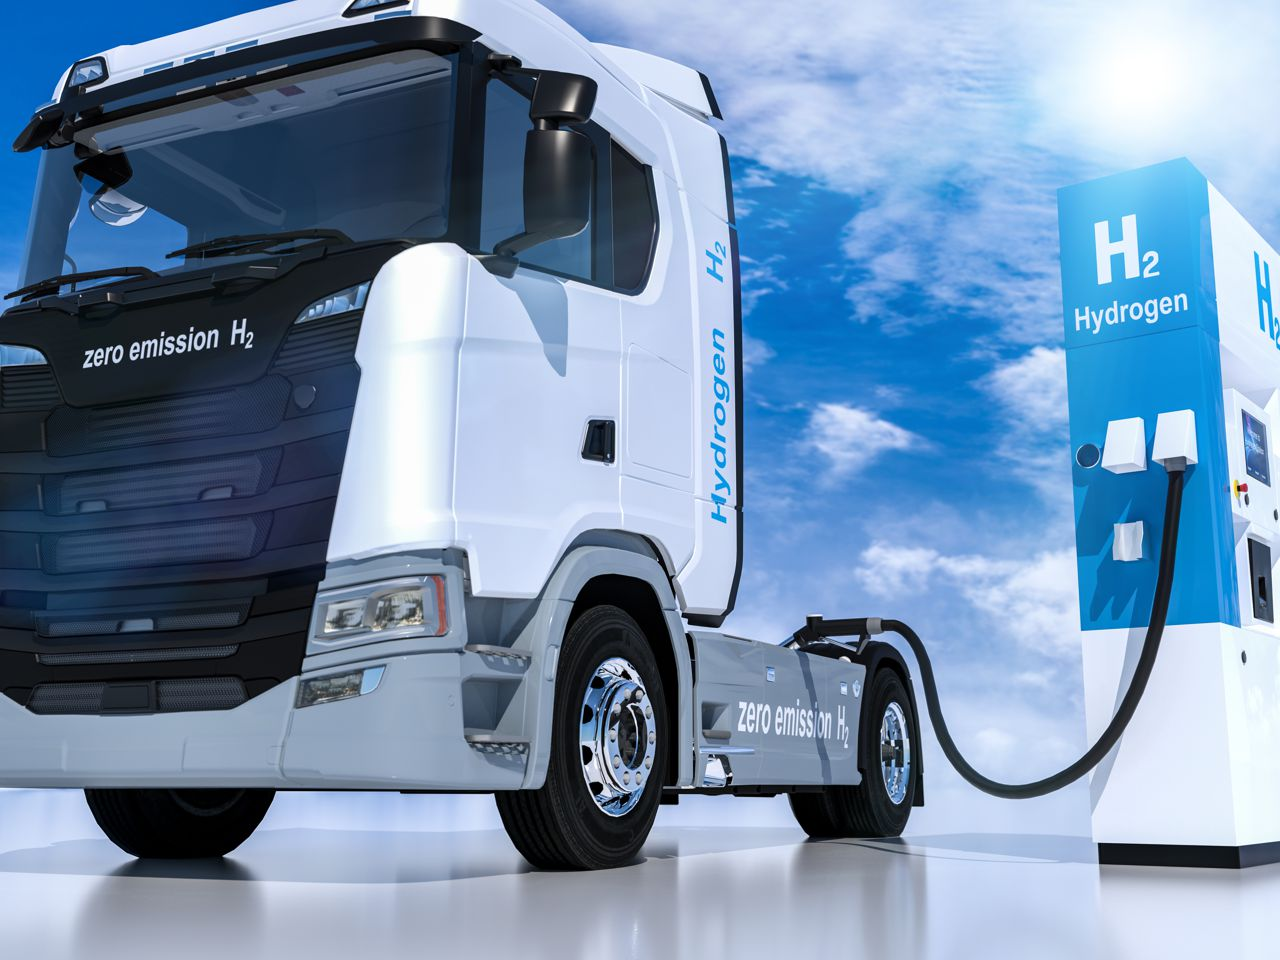 Truck at fuel filling station with hydrogen symbol